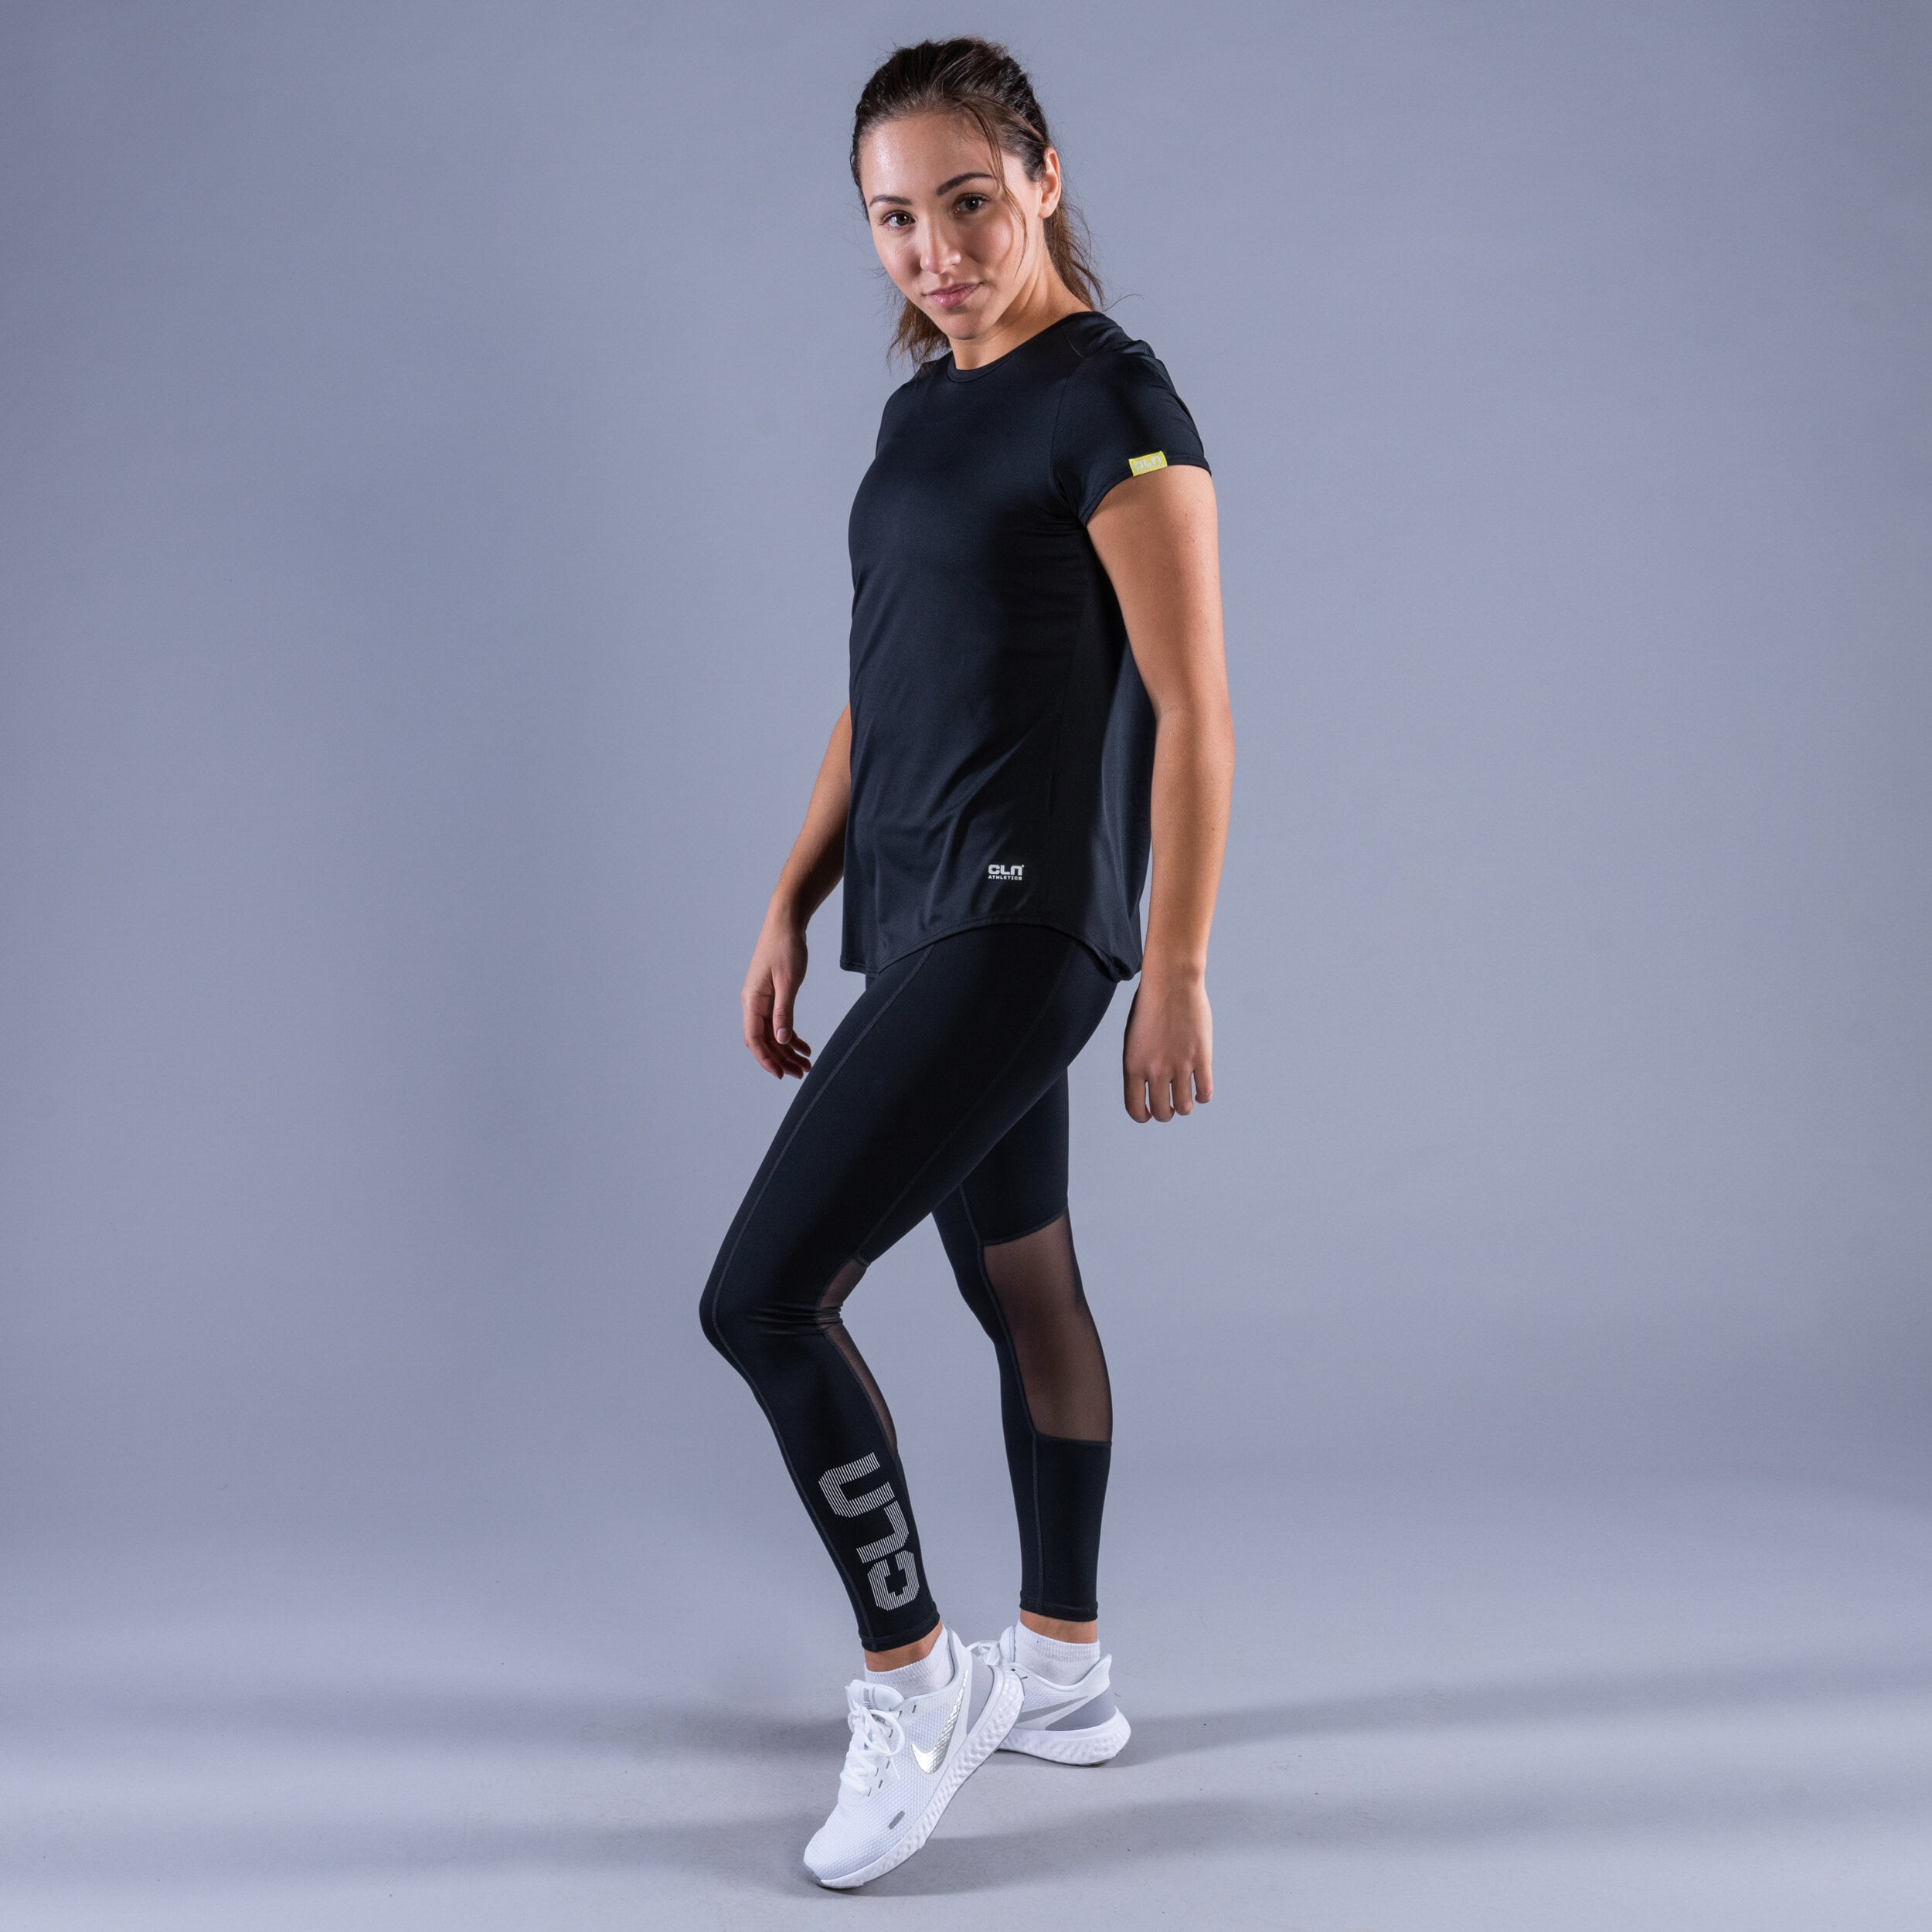 Package Freedom tights - Mel t-shirt Black